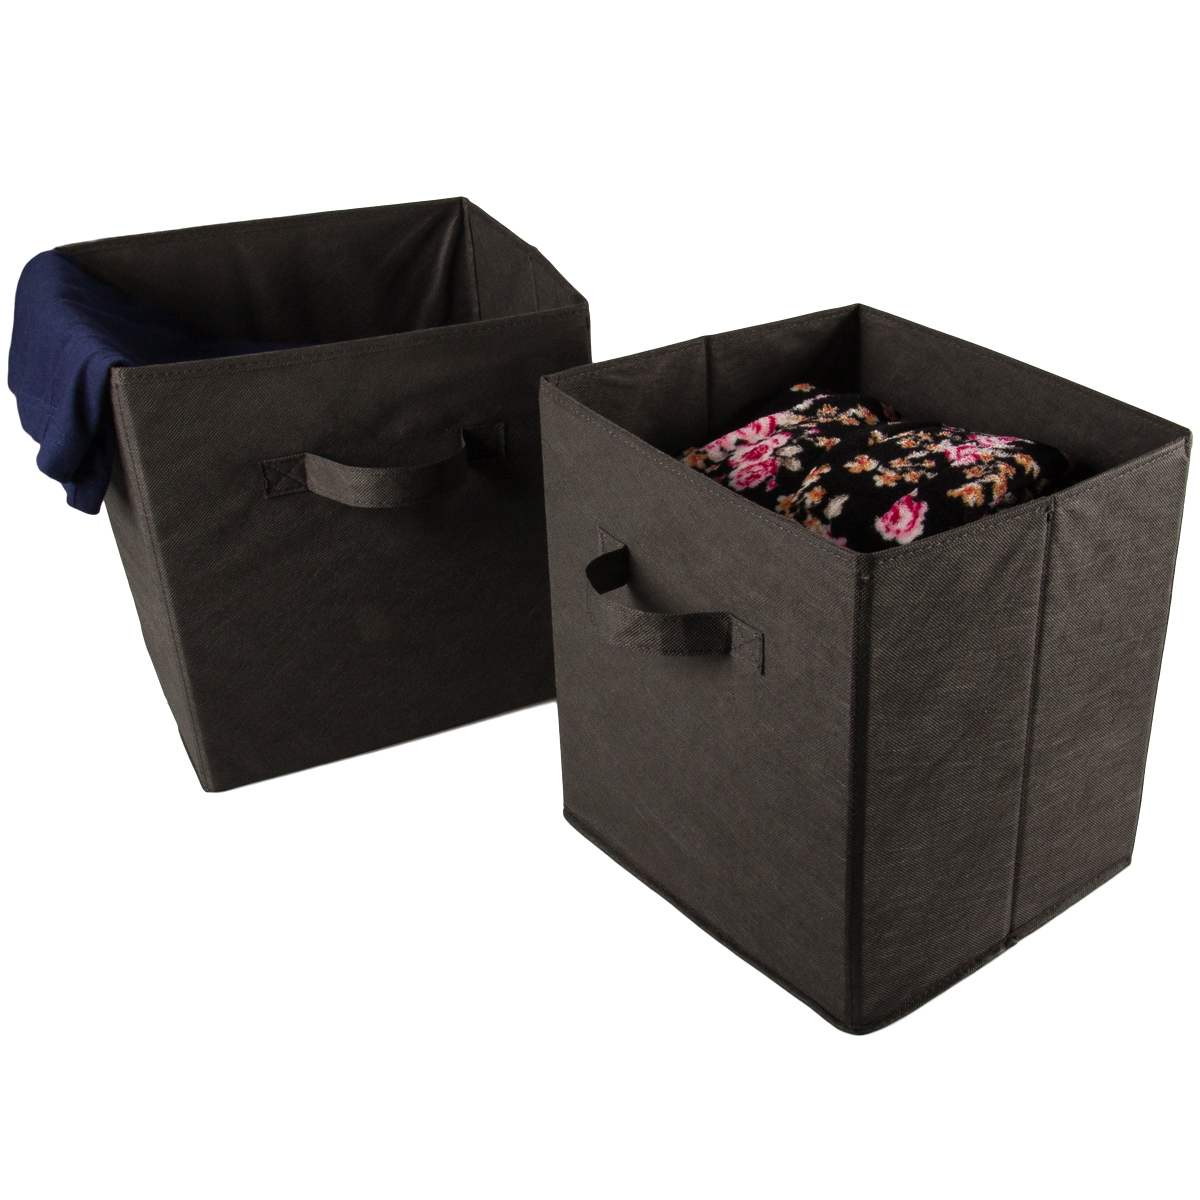 2 Large Foldable Fabric Storage Bins Cubes Home Organization Organizer Baskets